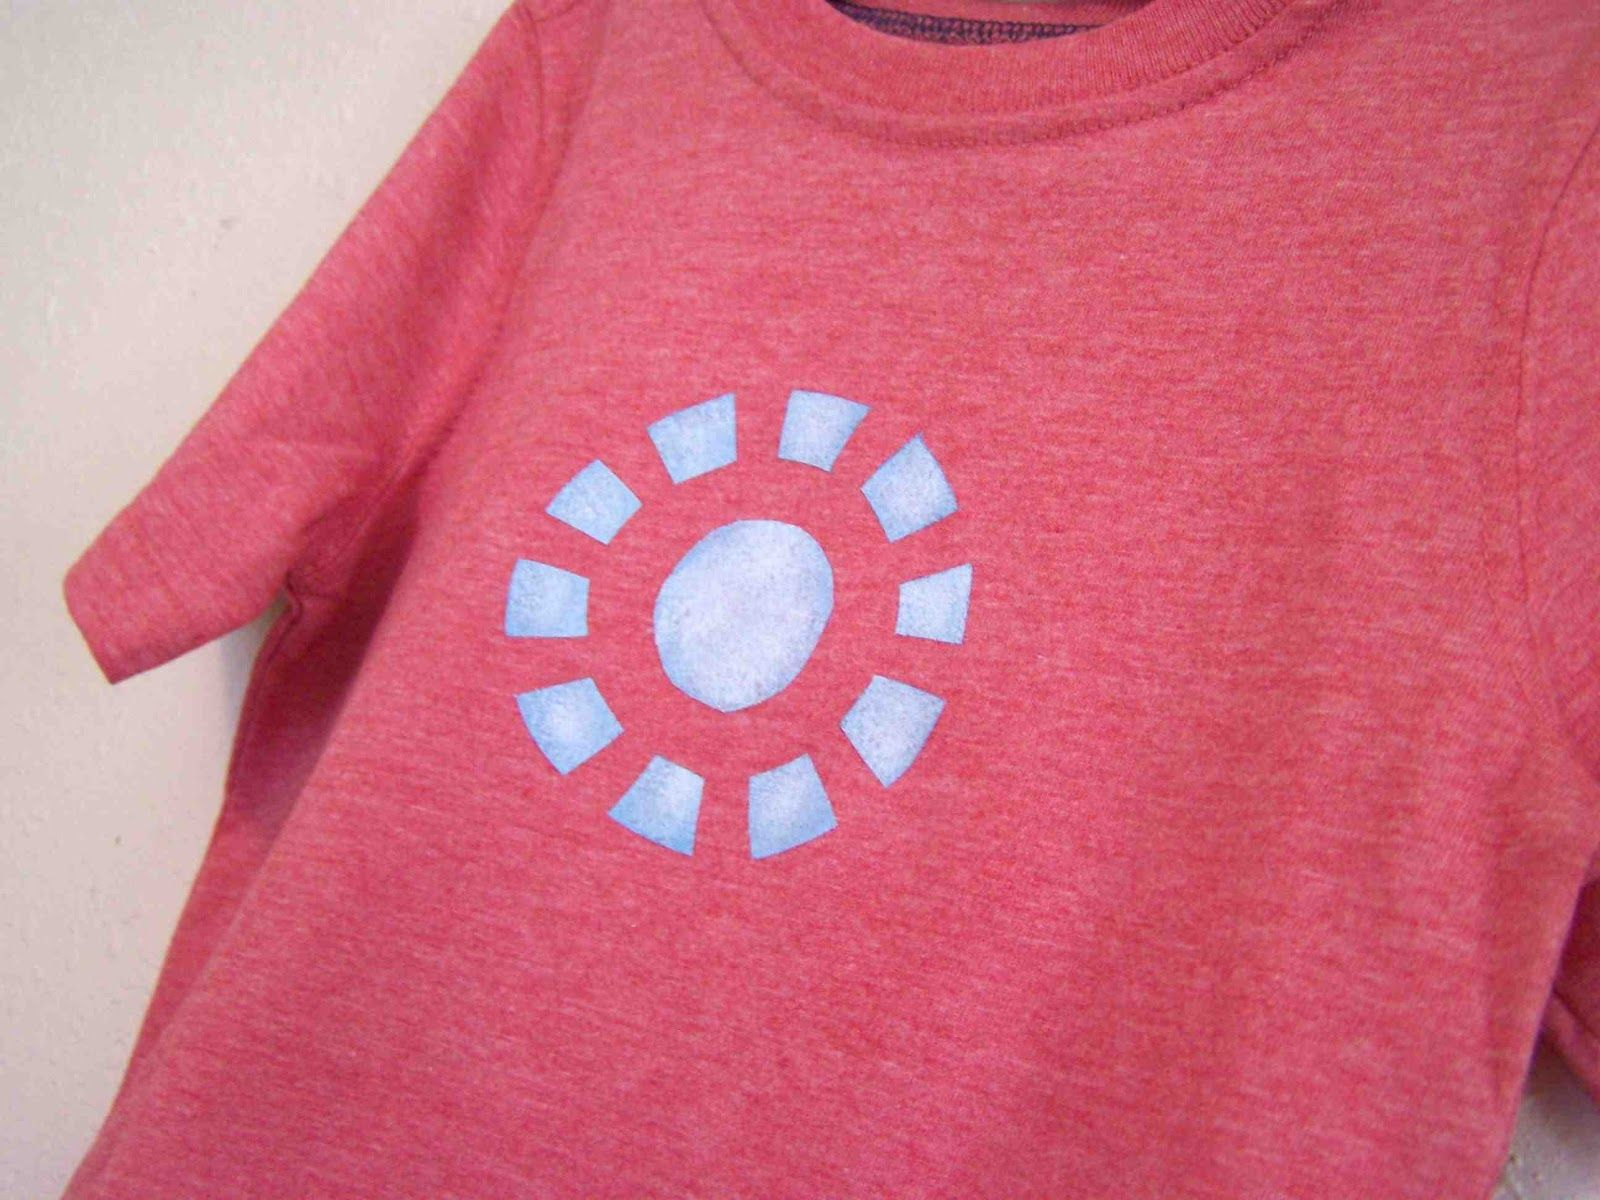 Iron Man Arc Reactor T Shirt, Includes Template / Make For Earnie,  Glow In The Dark Fabric Paint Or Iron On Transfer Maybe?